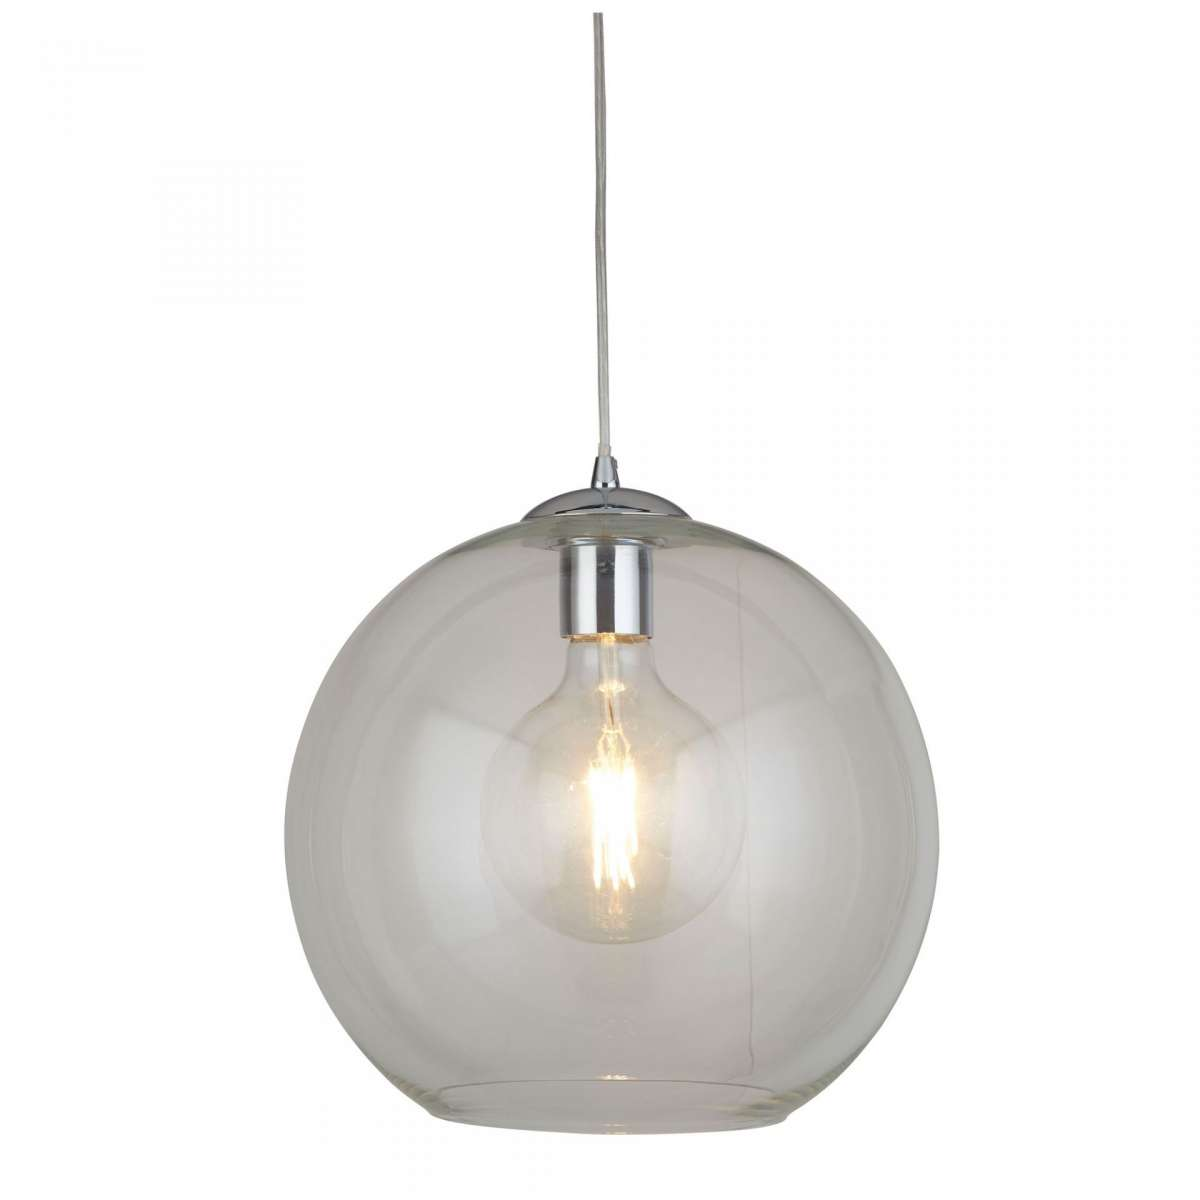 Balls Singe Pendant Round 250mm Clear Glass Chrome